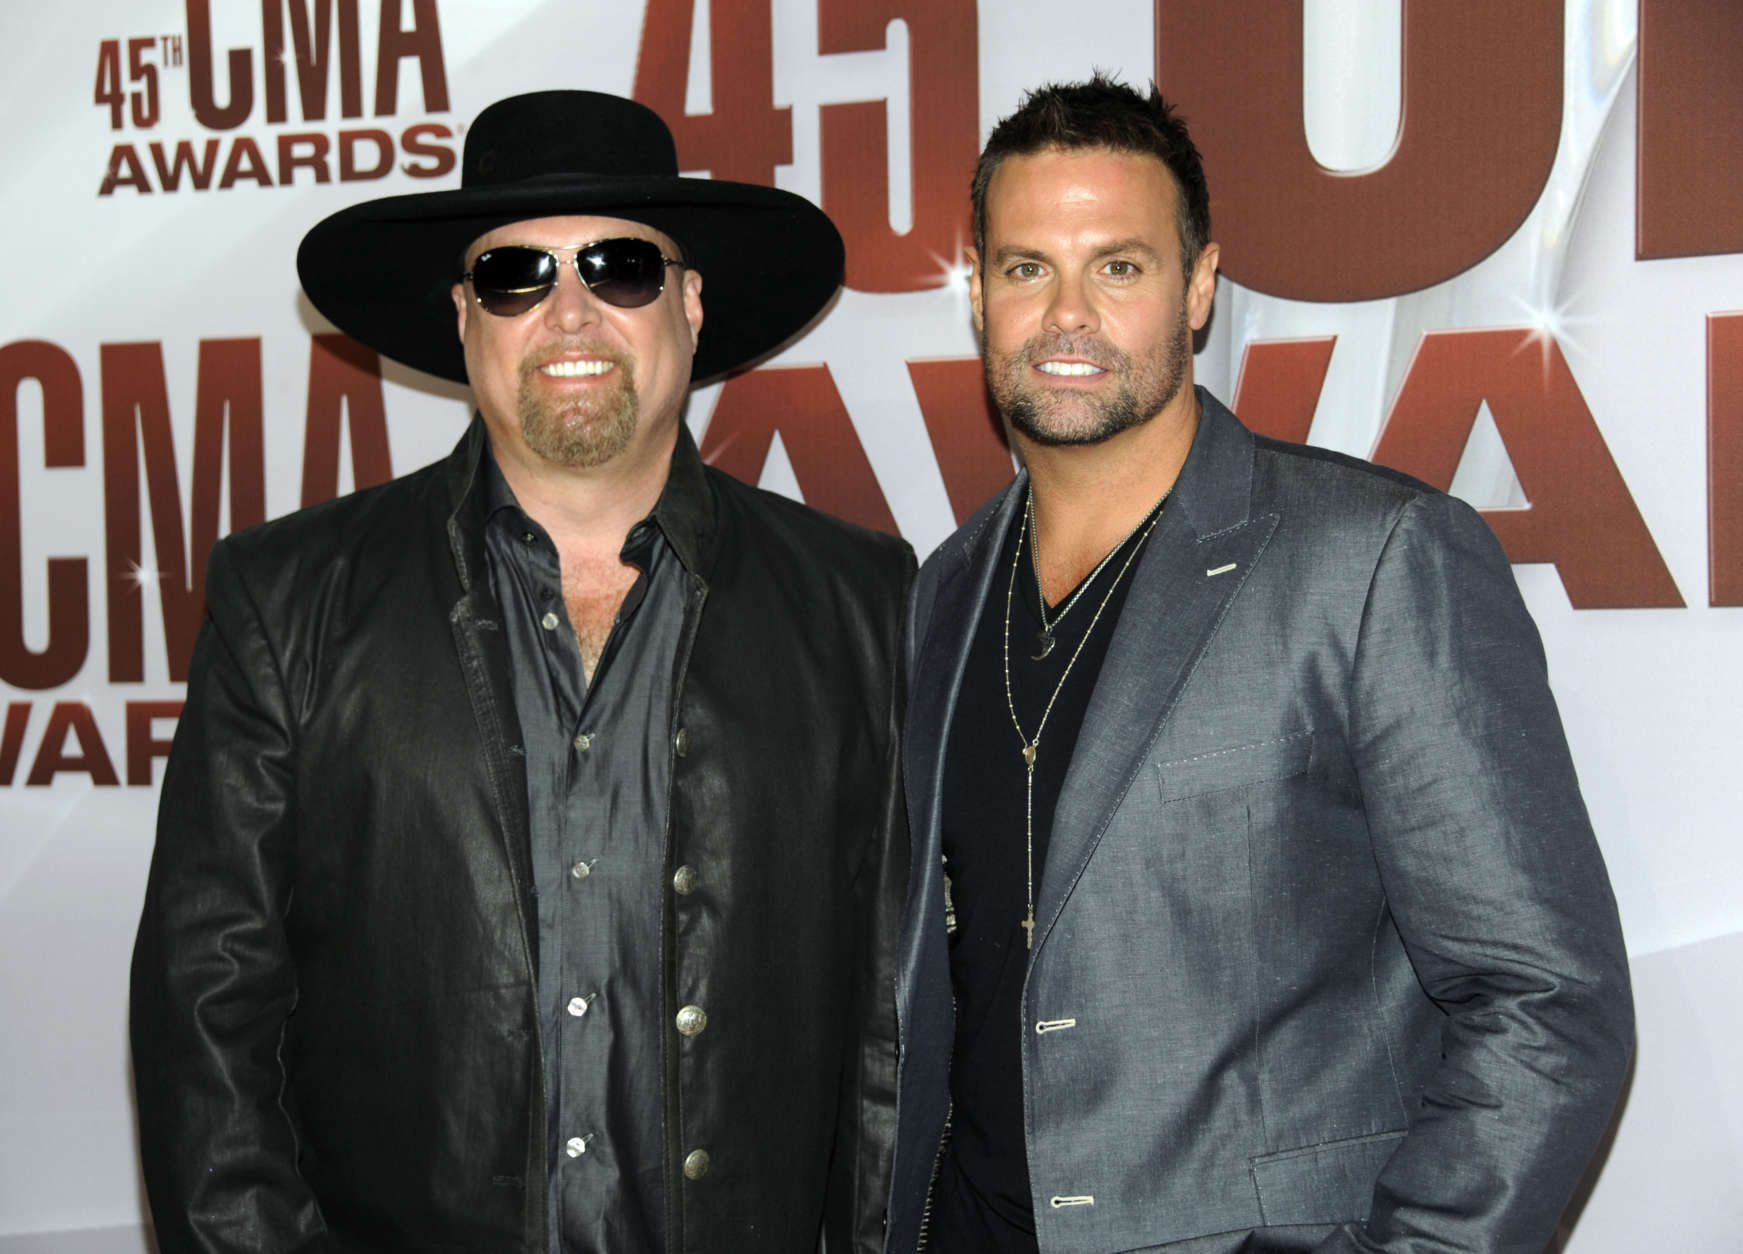 Eddie Montgomery, left, and Troy Gentry of Montgomery Gentry arrive at the 45th Annual CMA Awards in Nashville on Wednesday, Nov. 9, 2011. (AP Photo/Evan Agostini)